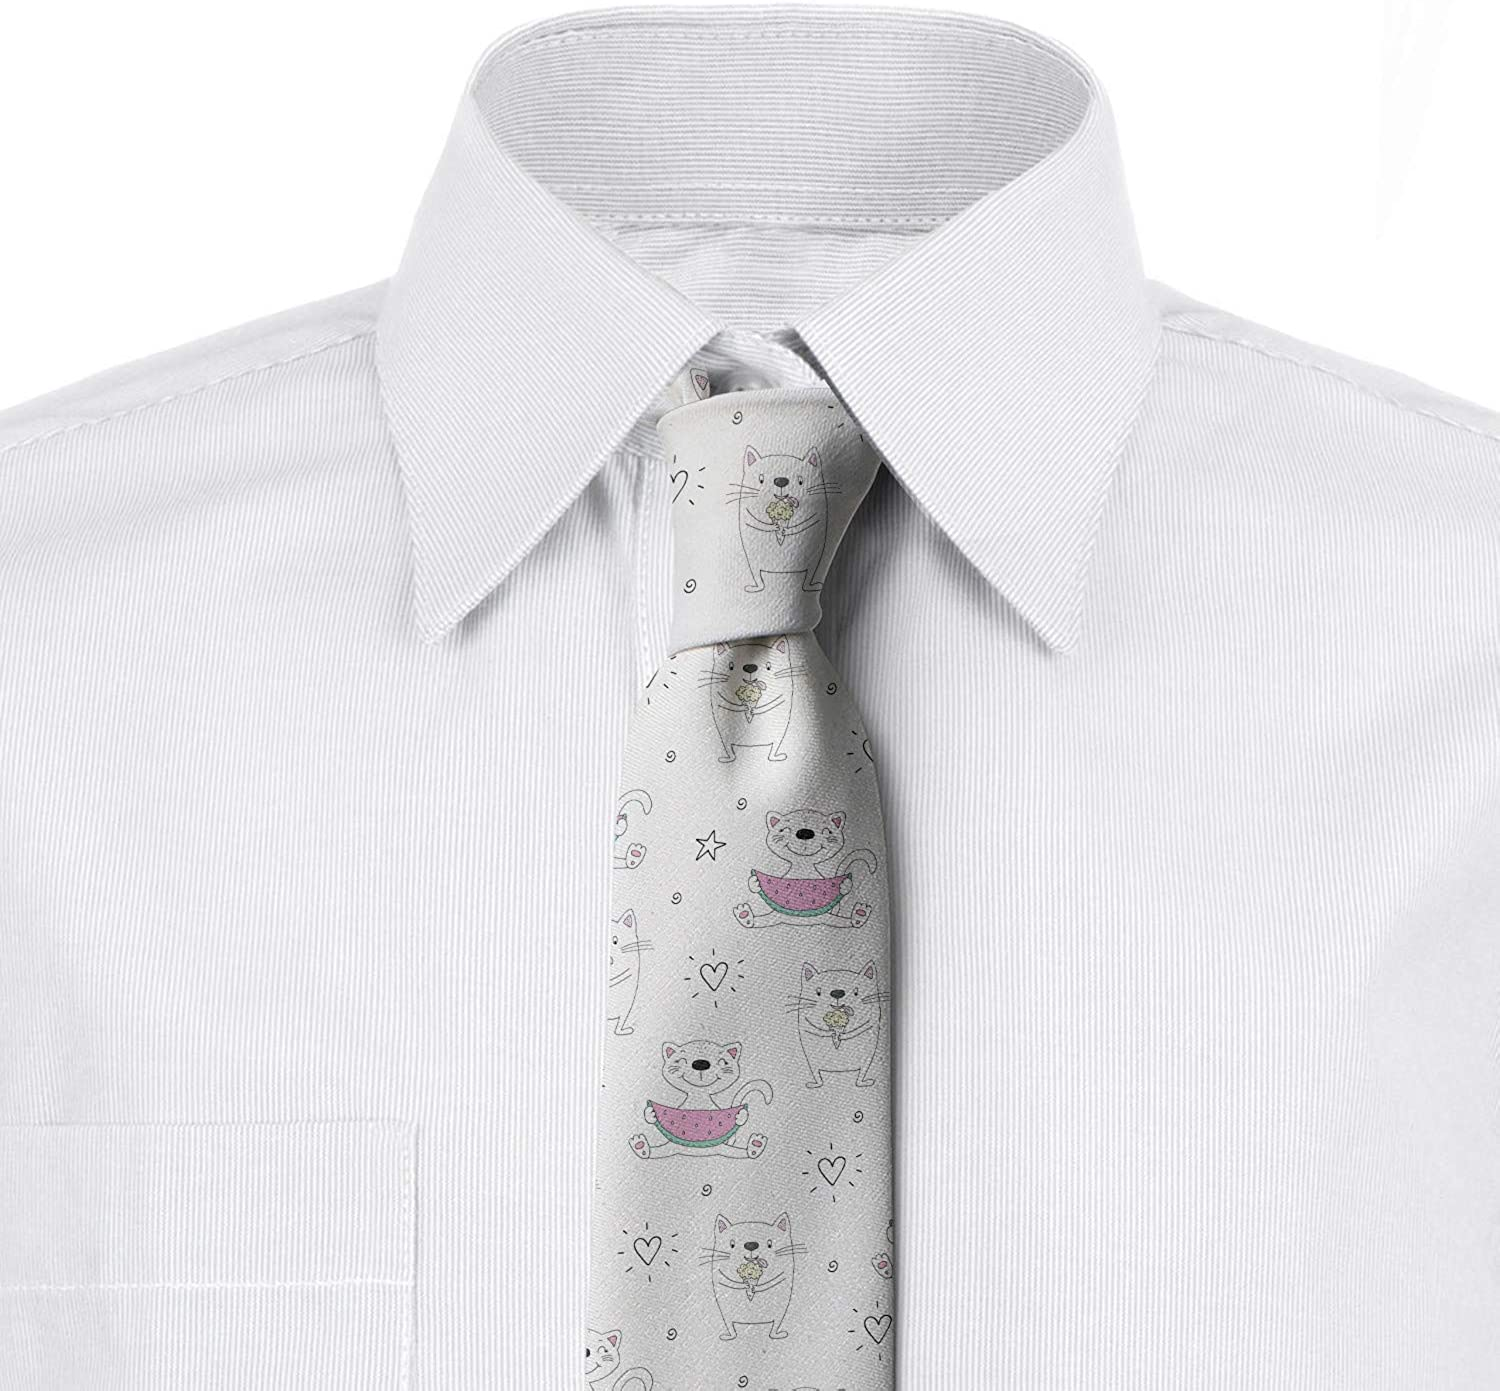 Doodle Kittens and Watermelon 3.7 Ambesonne Mens Tie Pale Pink Mint Green